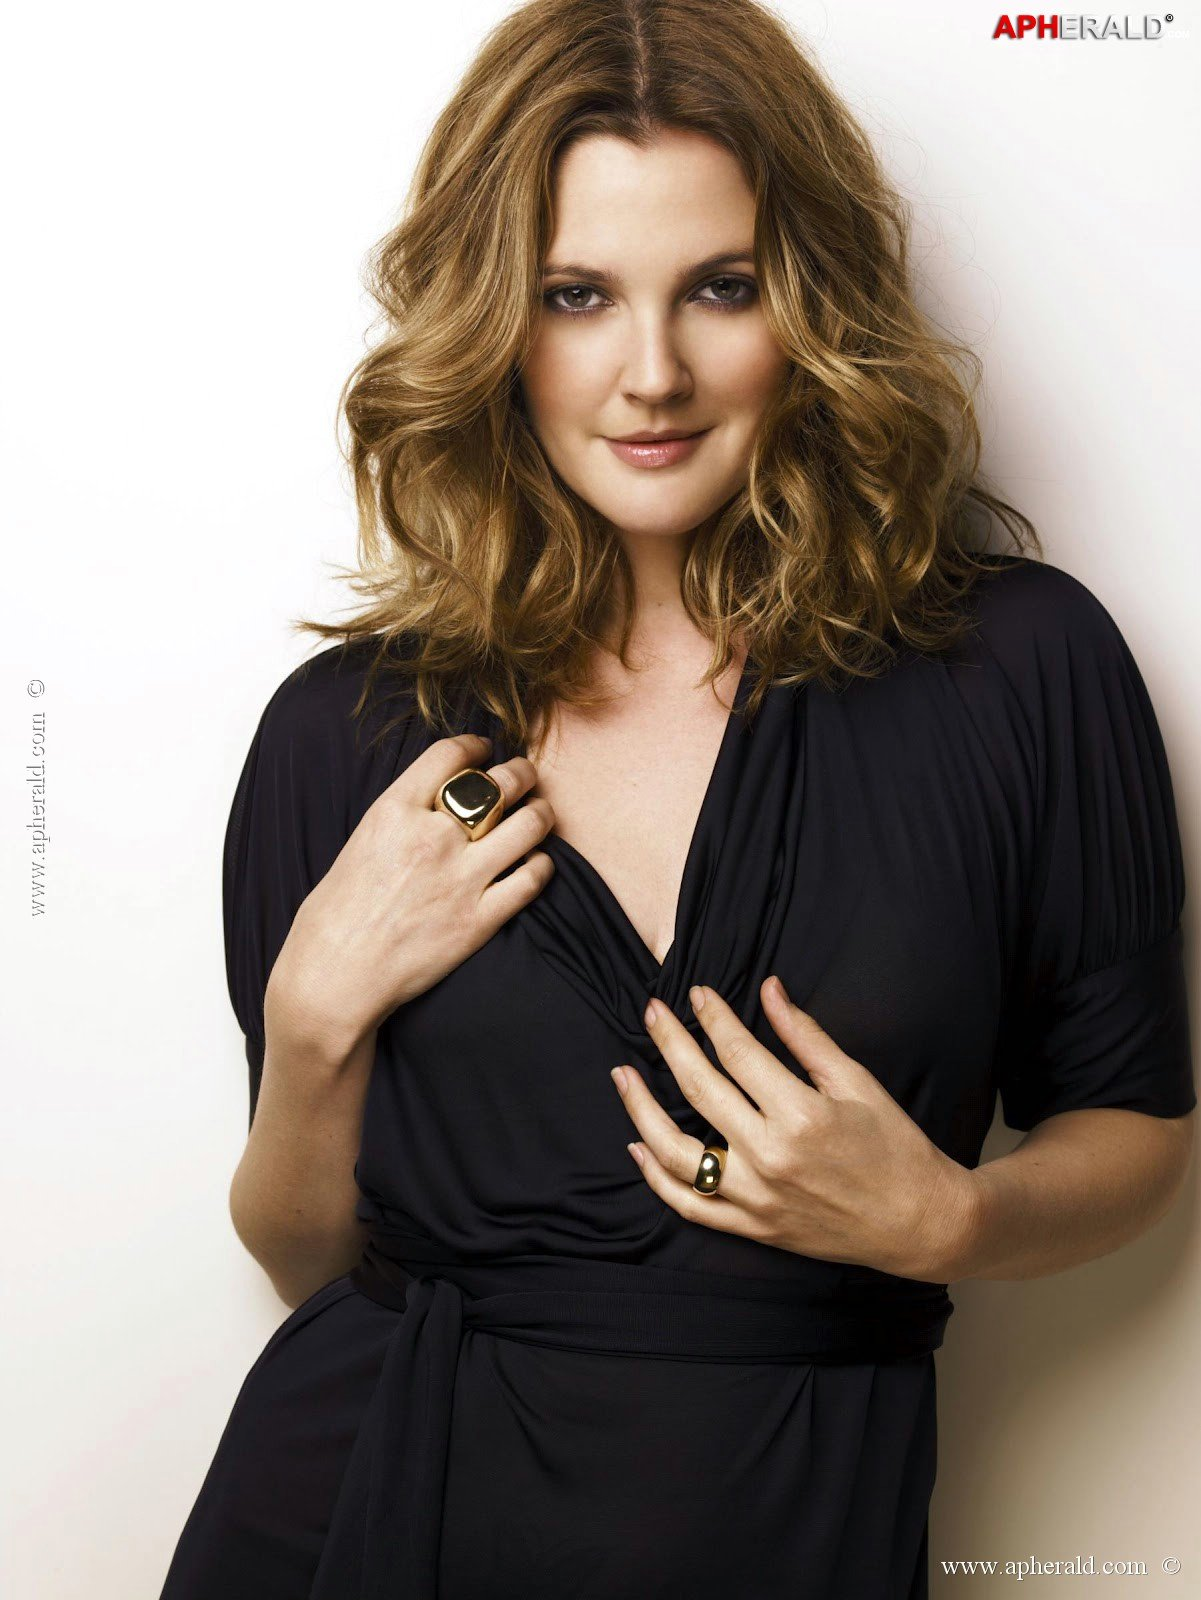 Hot Drew Barrymore naked (36 foto and video), Ass, Cleavage, Feet, bra 2006